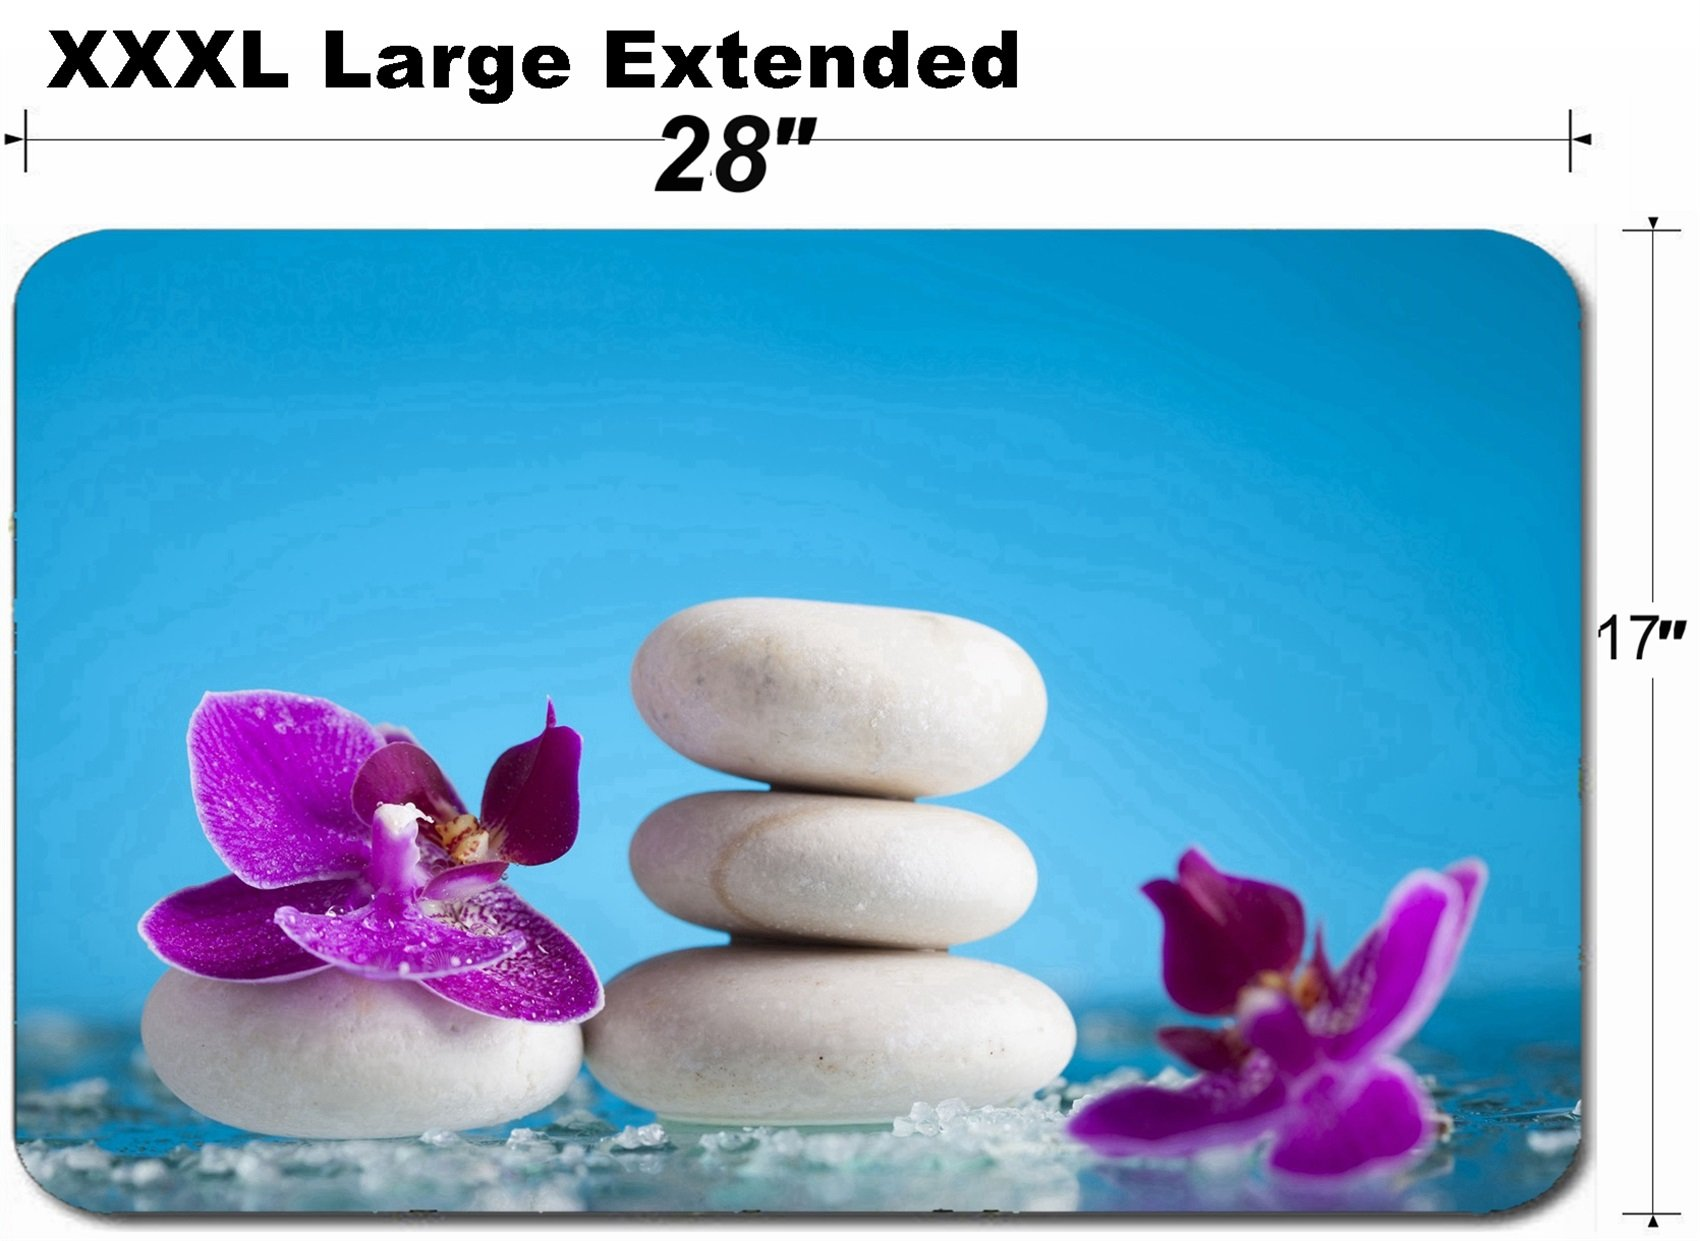 MSD Large Table Mat Non-Slip Natural Rubber Desk Pads Image ID 36433401 Spa Still Life with Pink Orchid and White Zen Stone on Blue backgroun